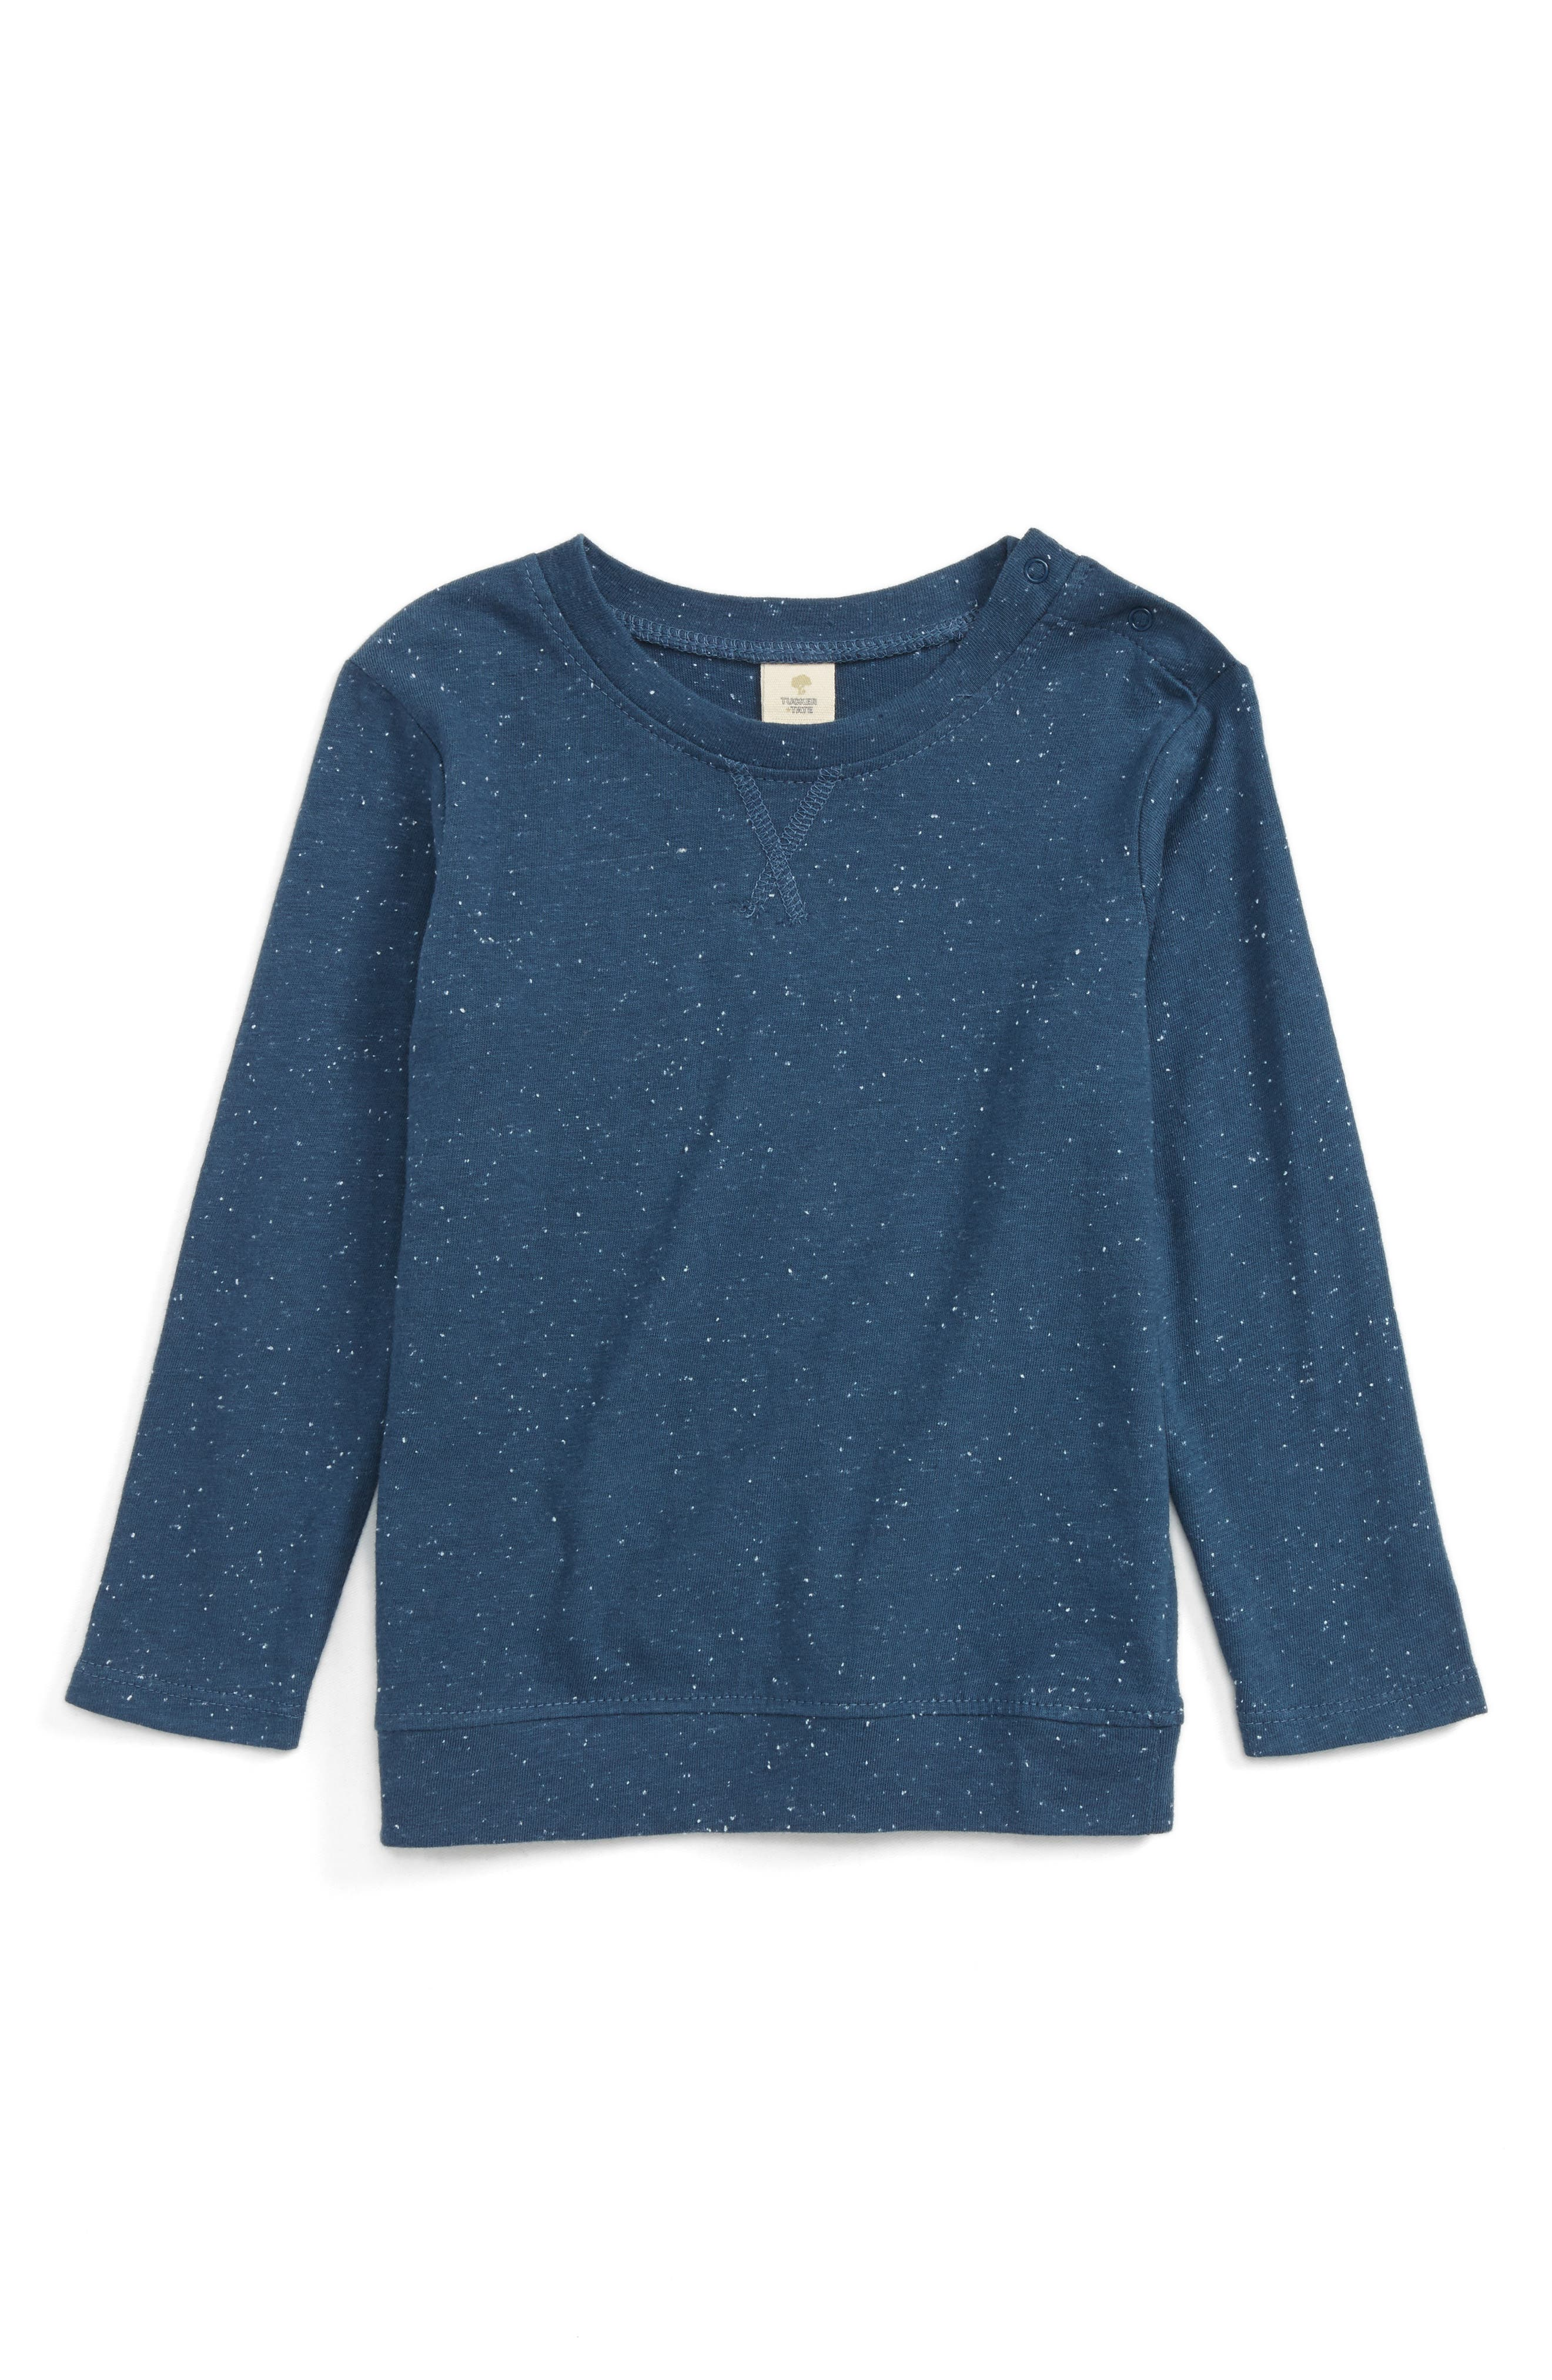 Alternate Image 1 Selected - Tucker + Tate Essential Long Sleeve T-Shirt (Baby Boys)